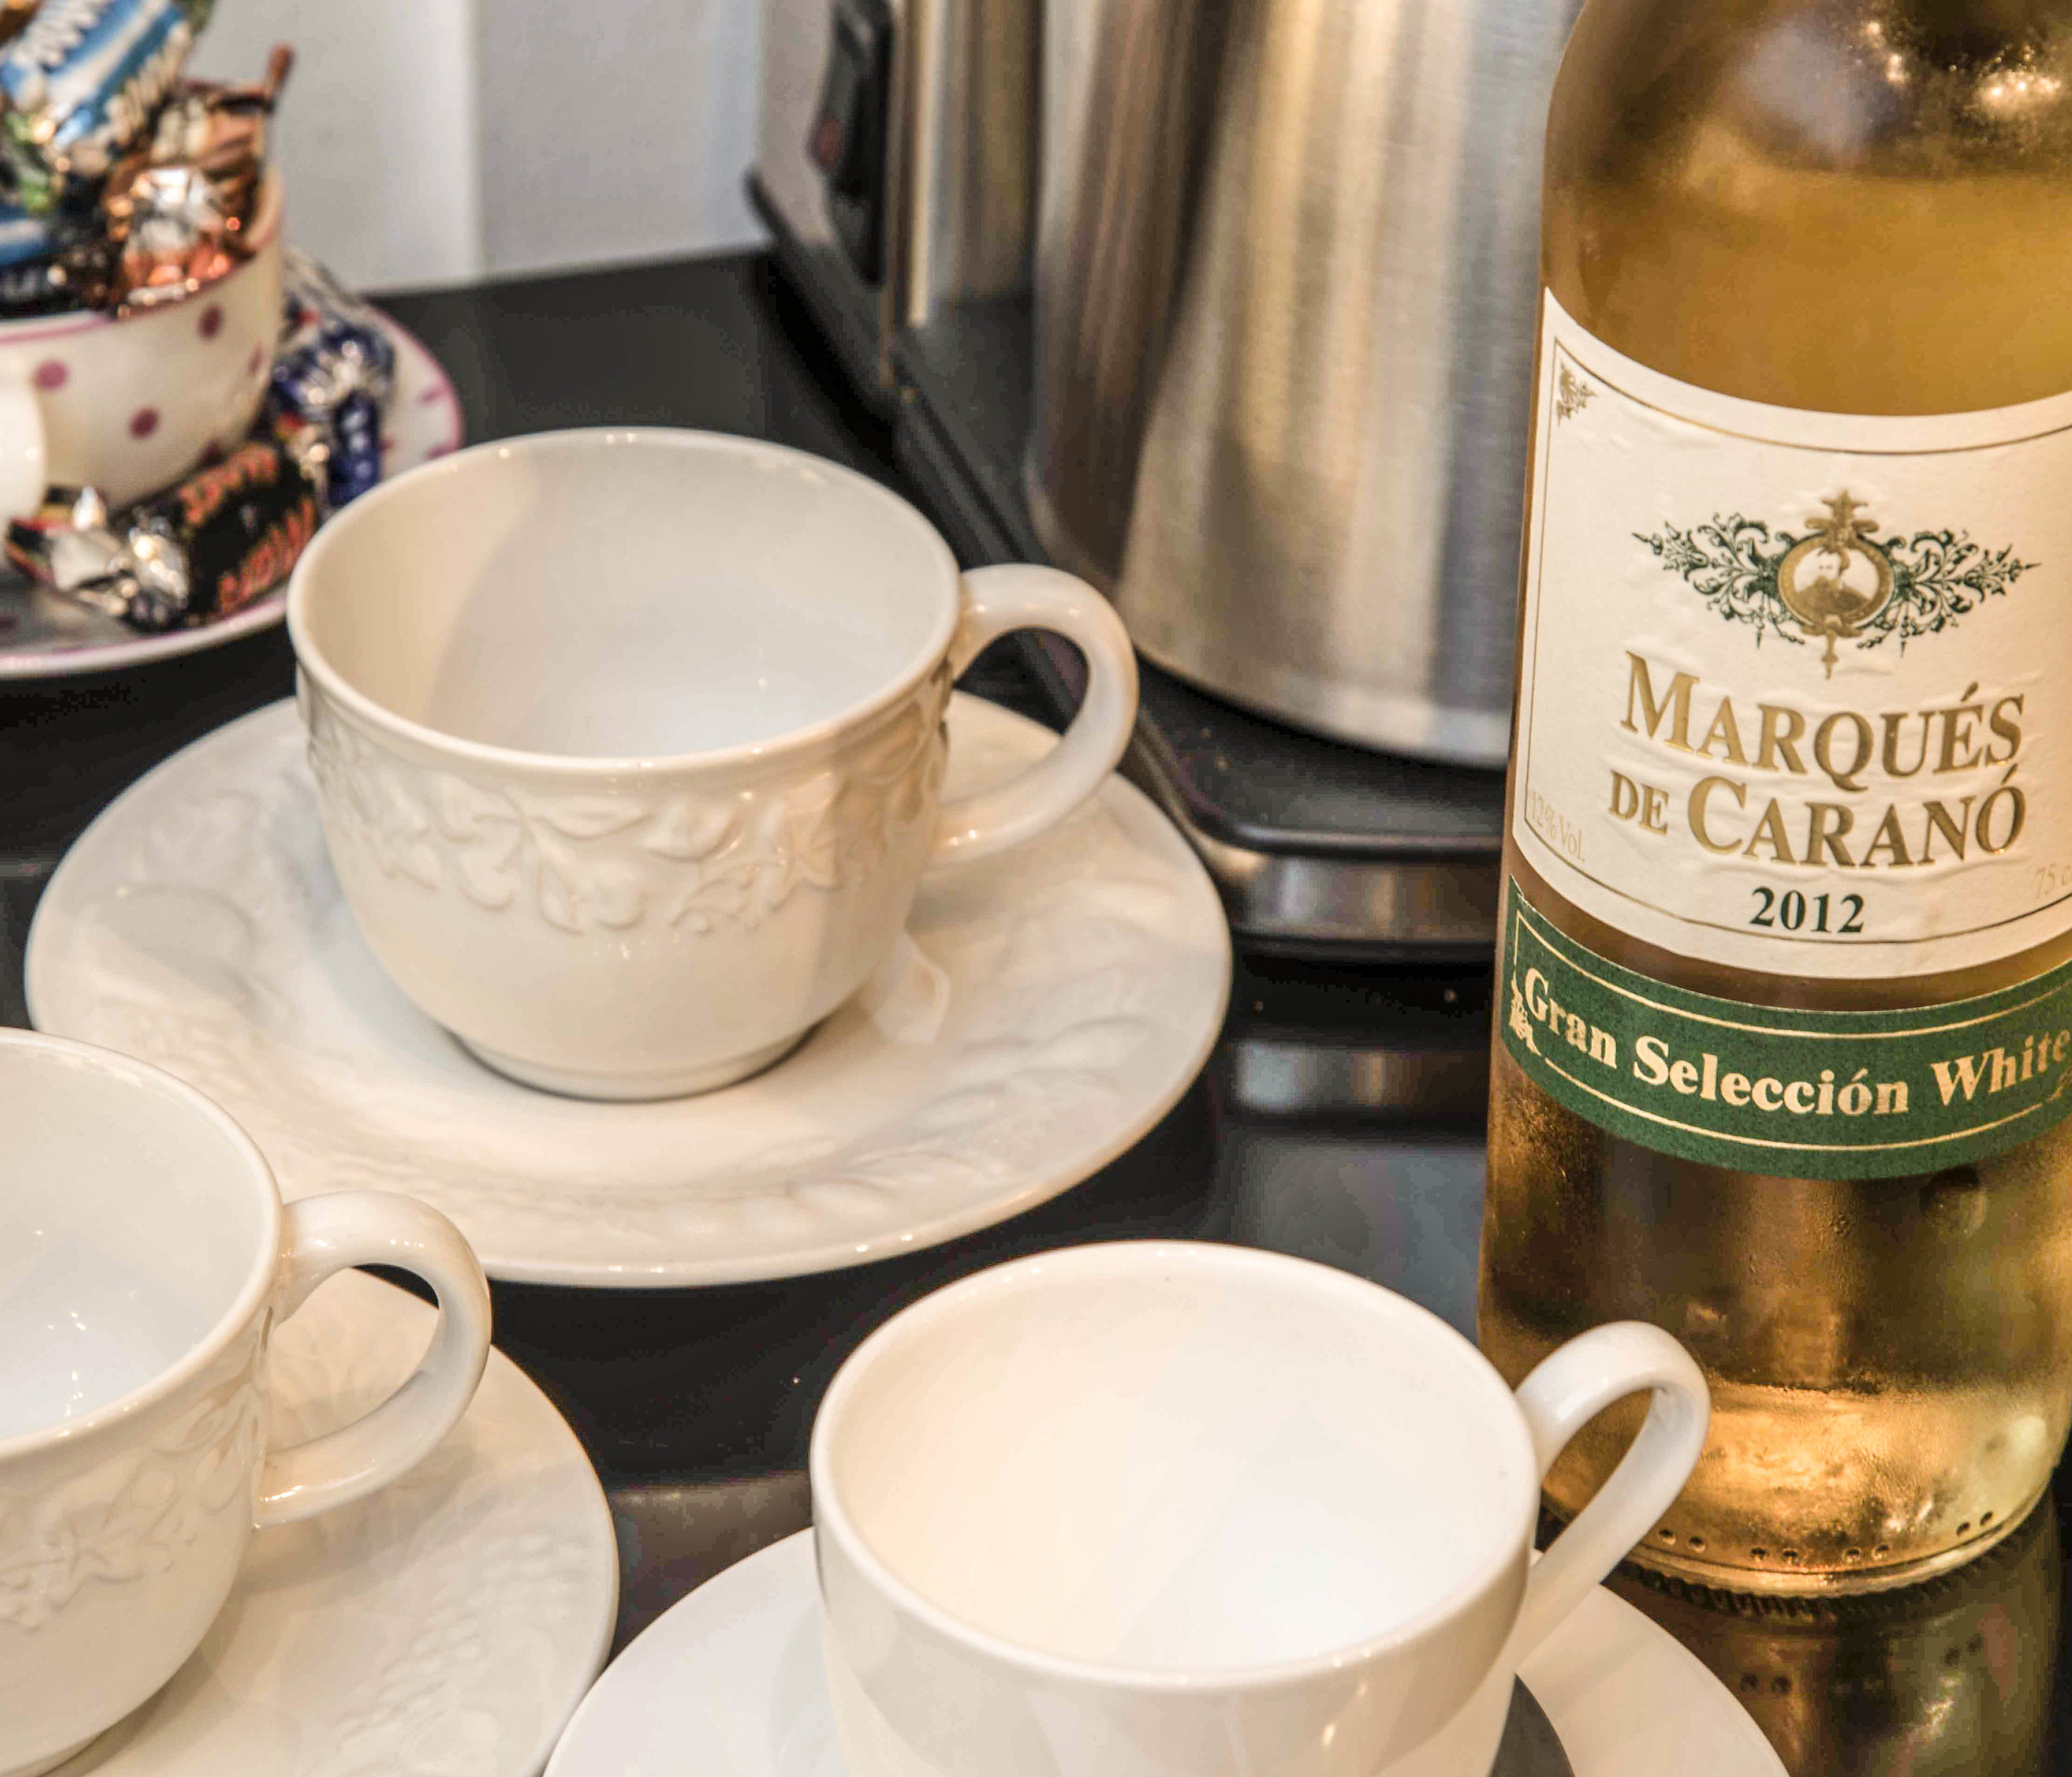 Coffee cups and a bottle of white wine.jpg